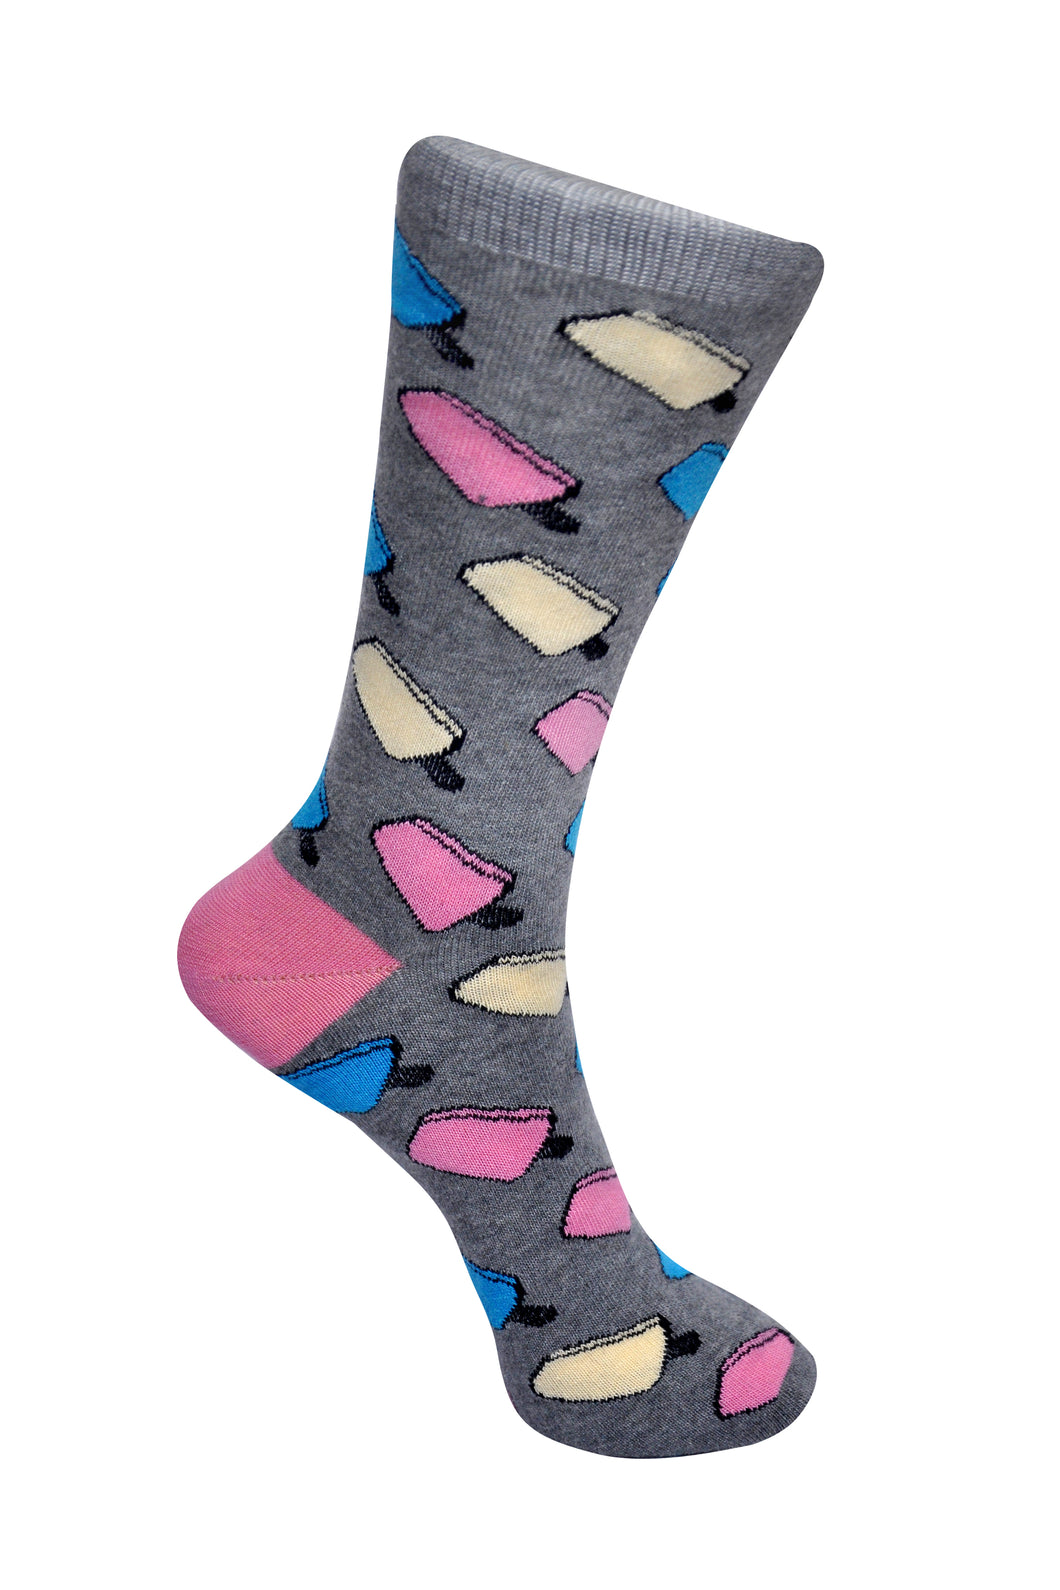 SWHF Organic Cotton Crew Length Designer Socks - Icecream - SWHF